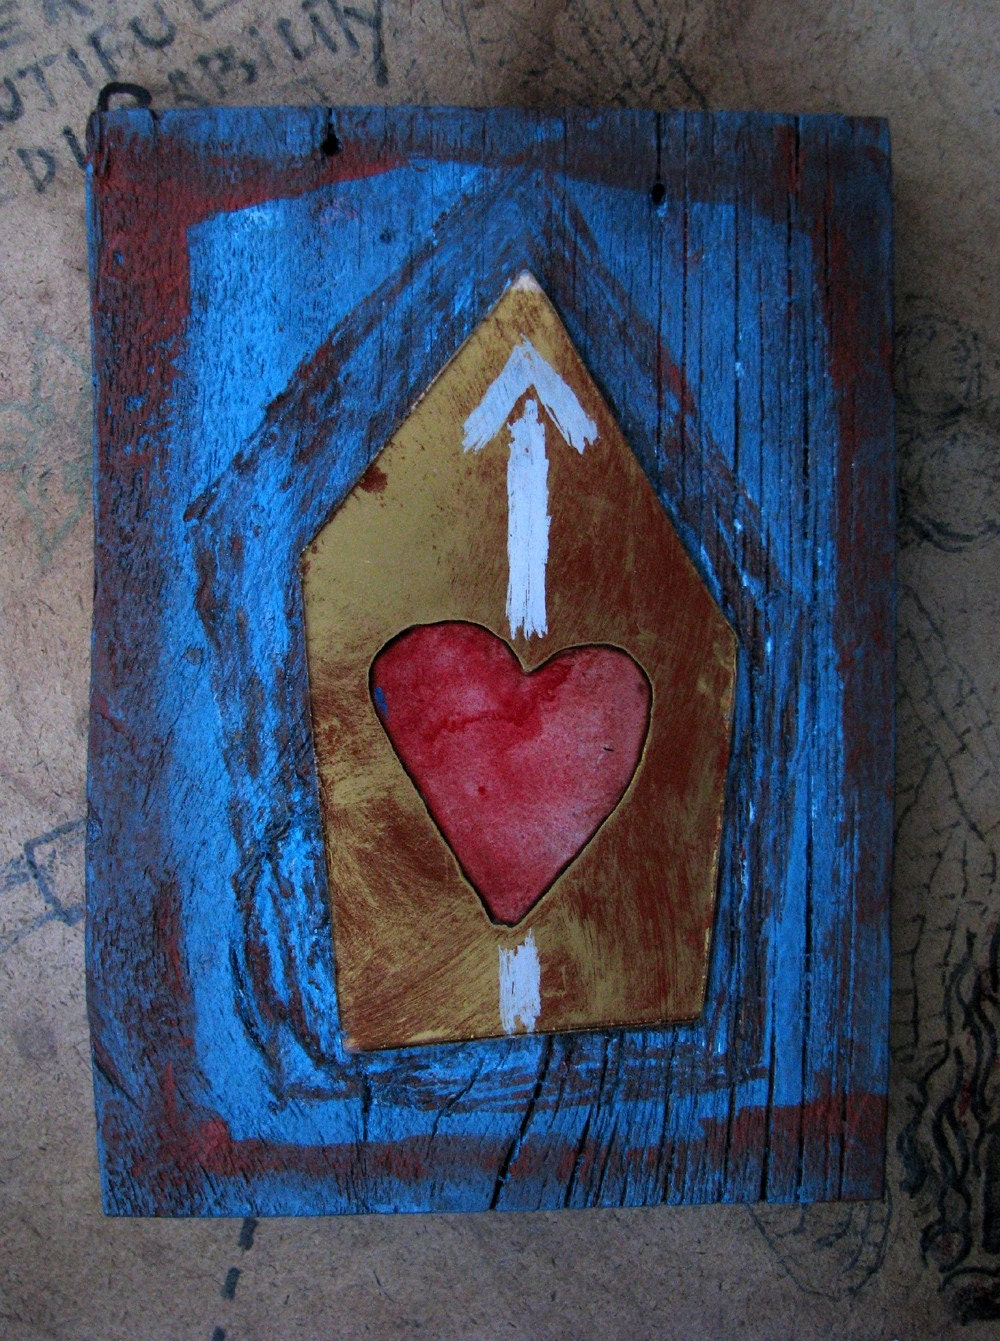 Heart with White Upward Arrow. On Blue with Dark Red-Orange Painted Wood.